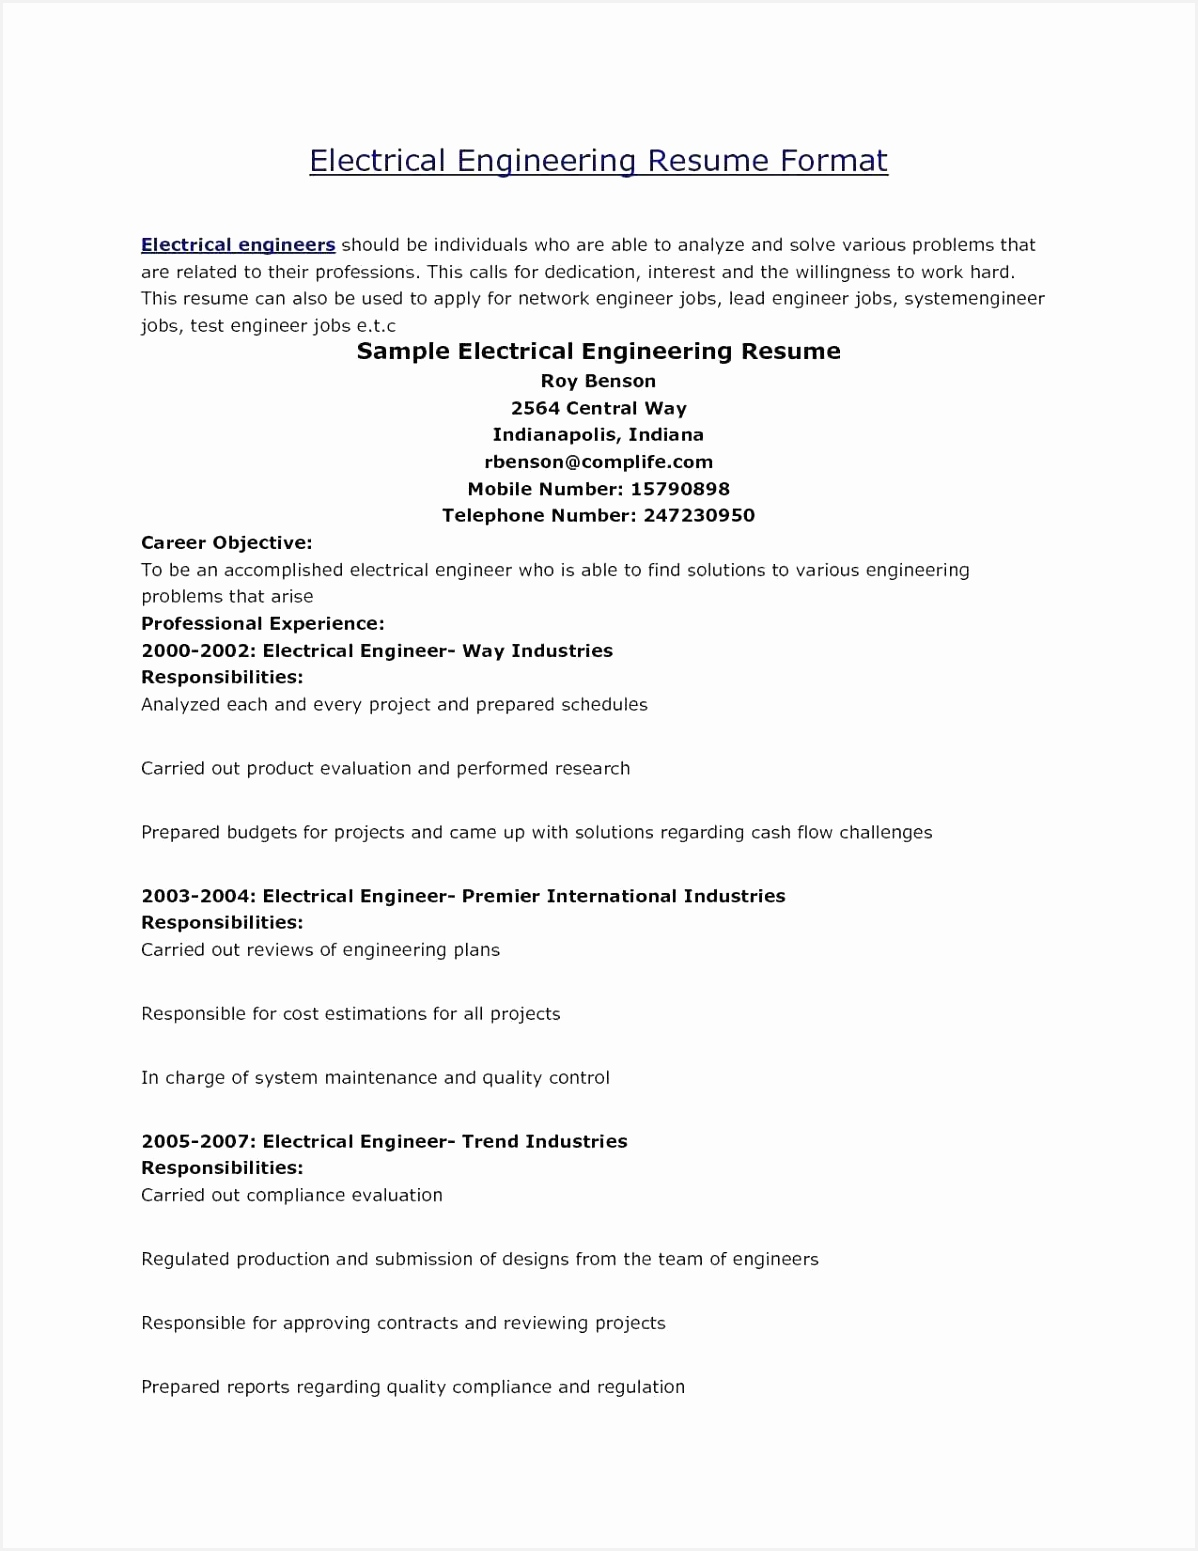 Contract Stress Engineer Sample Resume Nljaa Beautiful Resume format for Design Engineer In Mechanical Fresh Sample Resume Of Contract Stress Engineer Sample Resume Cagkn Unique 42 Unique Resume format for Mechanical Engineering Students Pdf